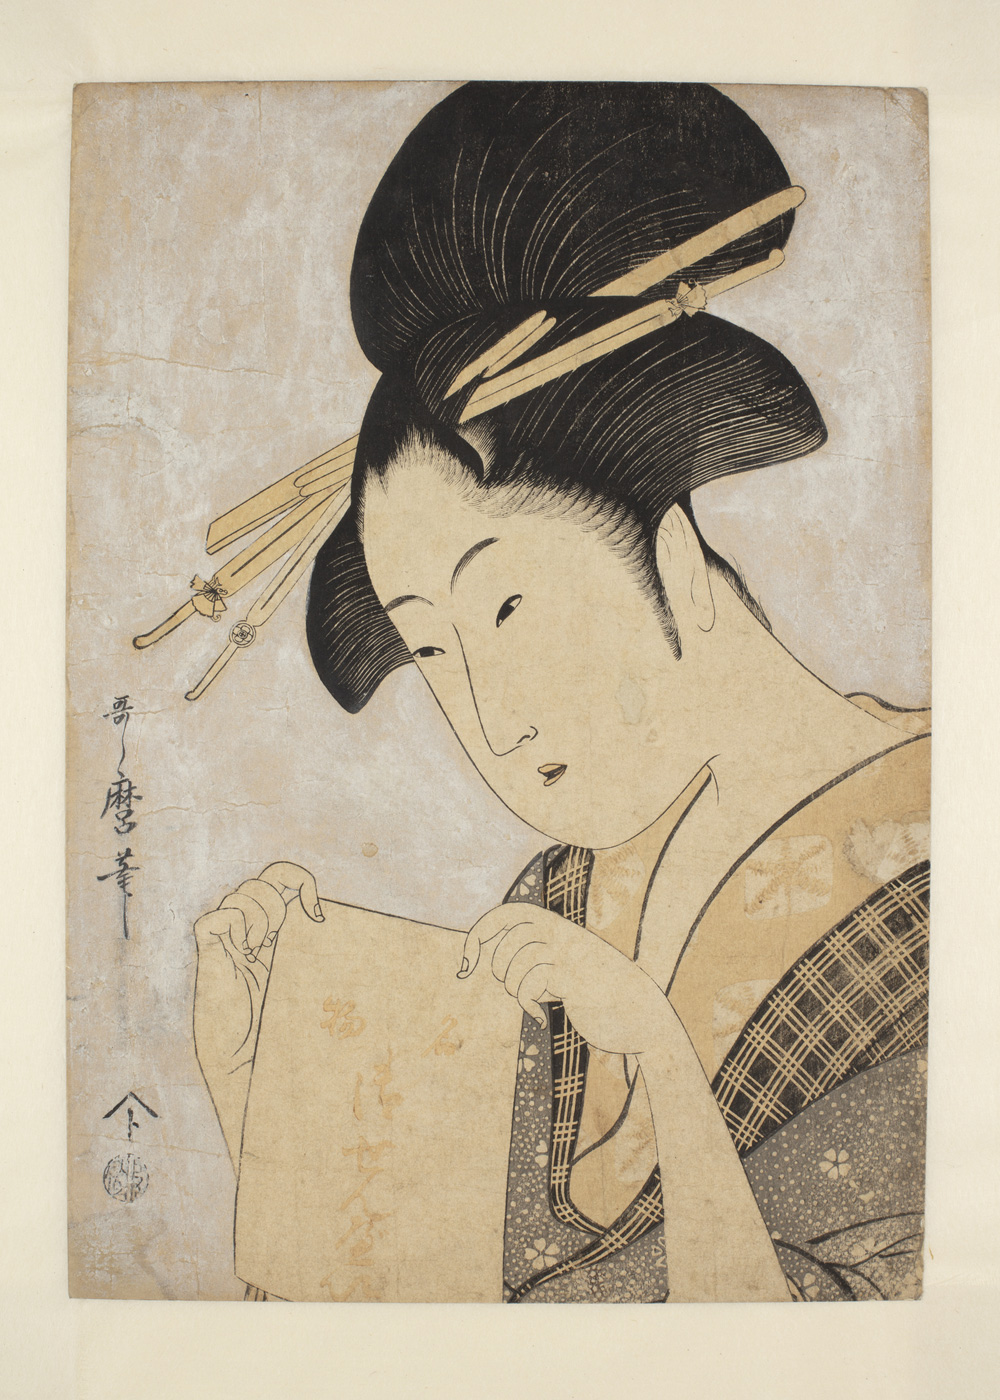 Japanese print of a woman dressed in traditional clothes holding a paper bag with Japanese text.